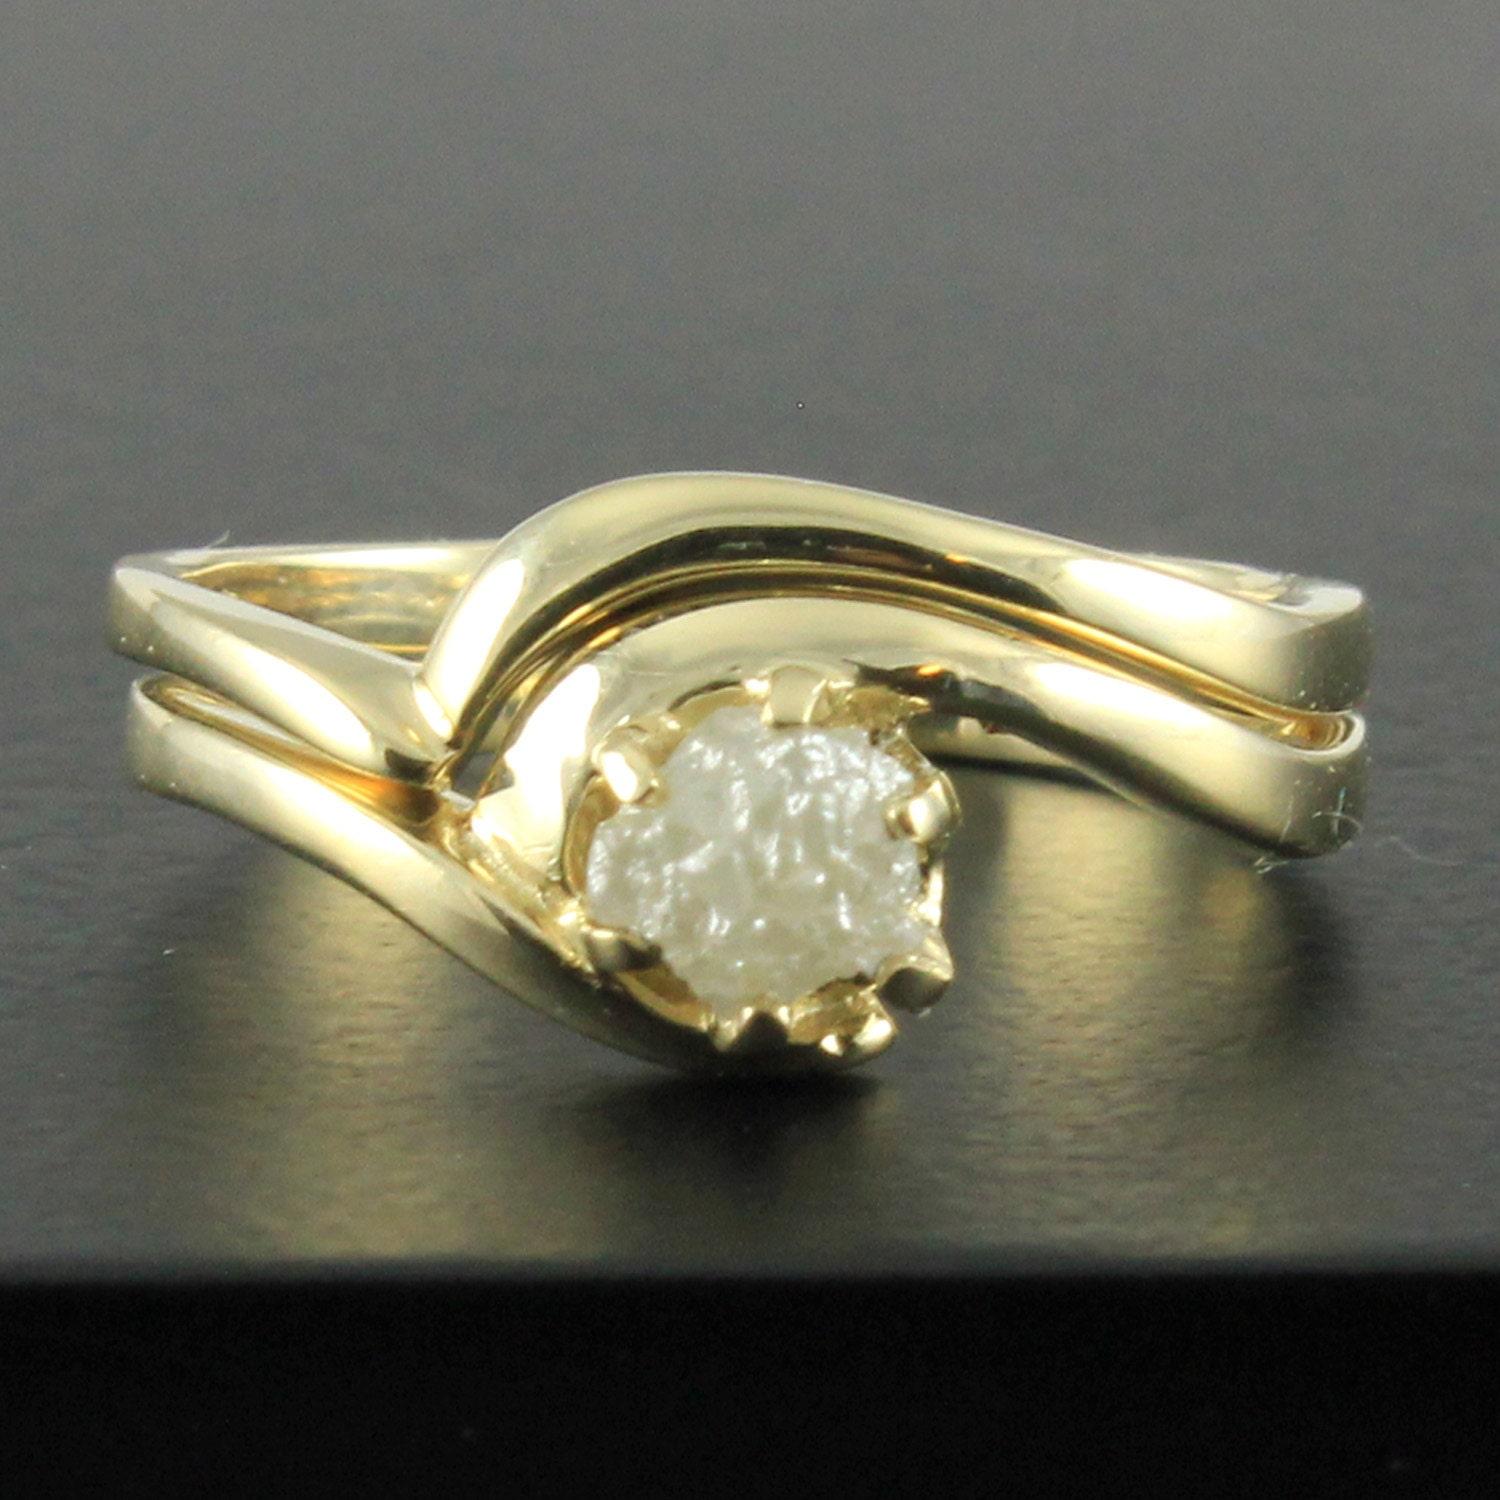 sarah rings rough beautiful engagement jewelry uncut raw o stone diamond